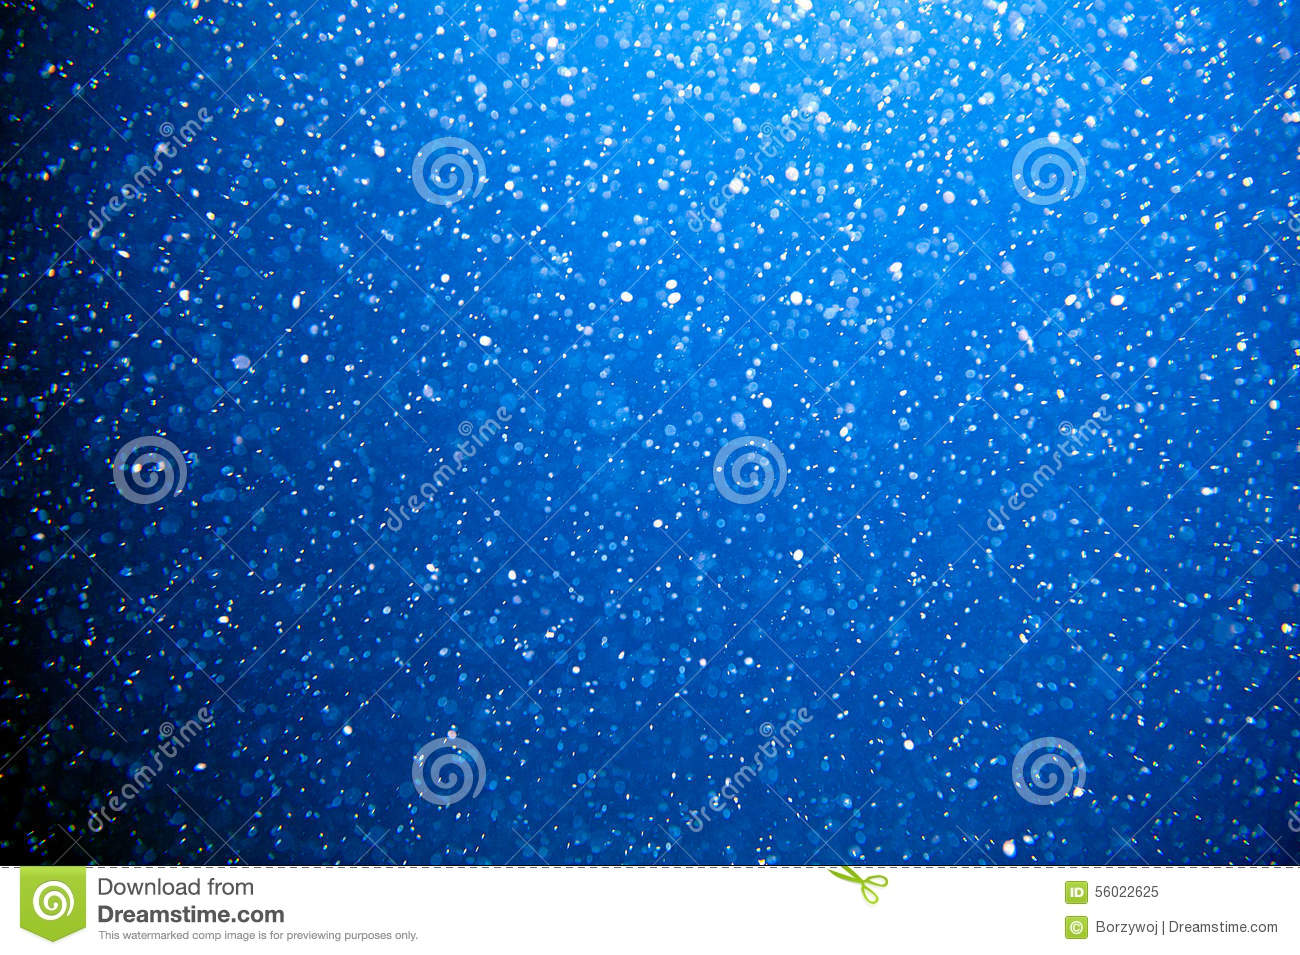 Download Plankton stock image. Image of blue, water, underwater - 56022625